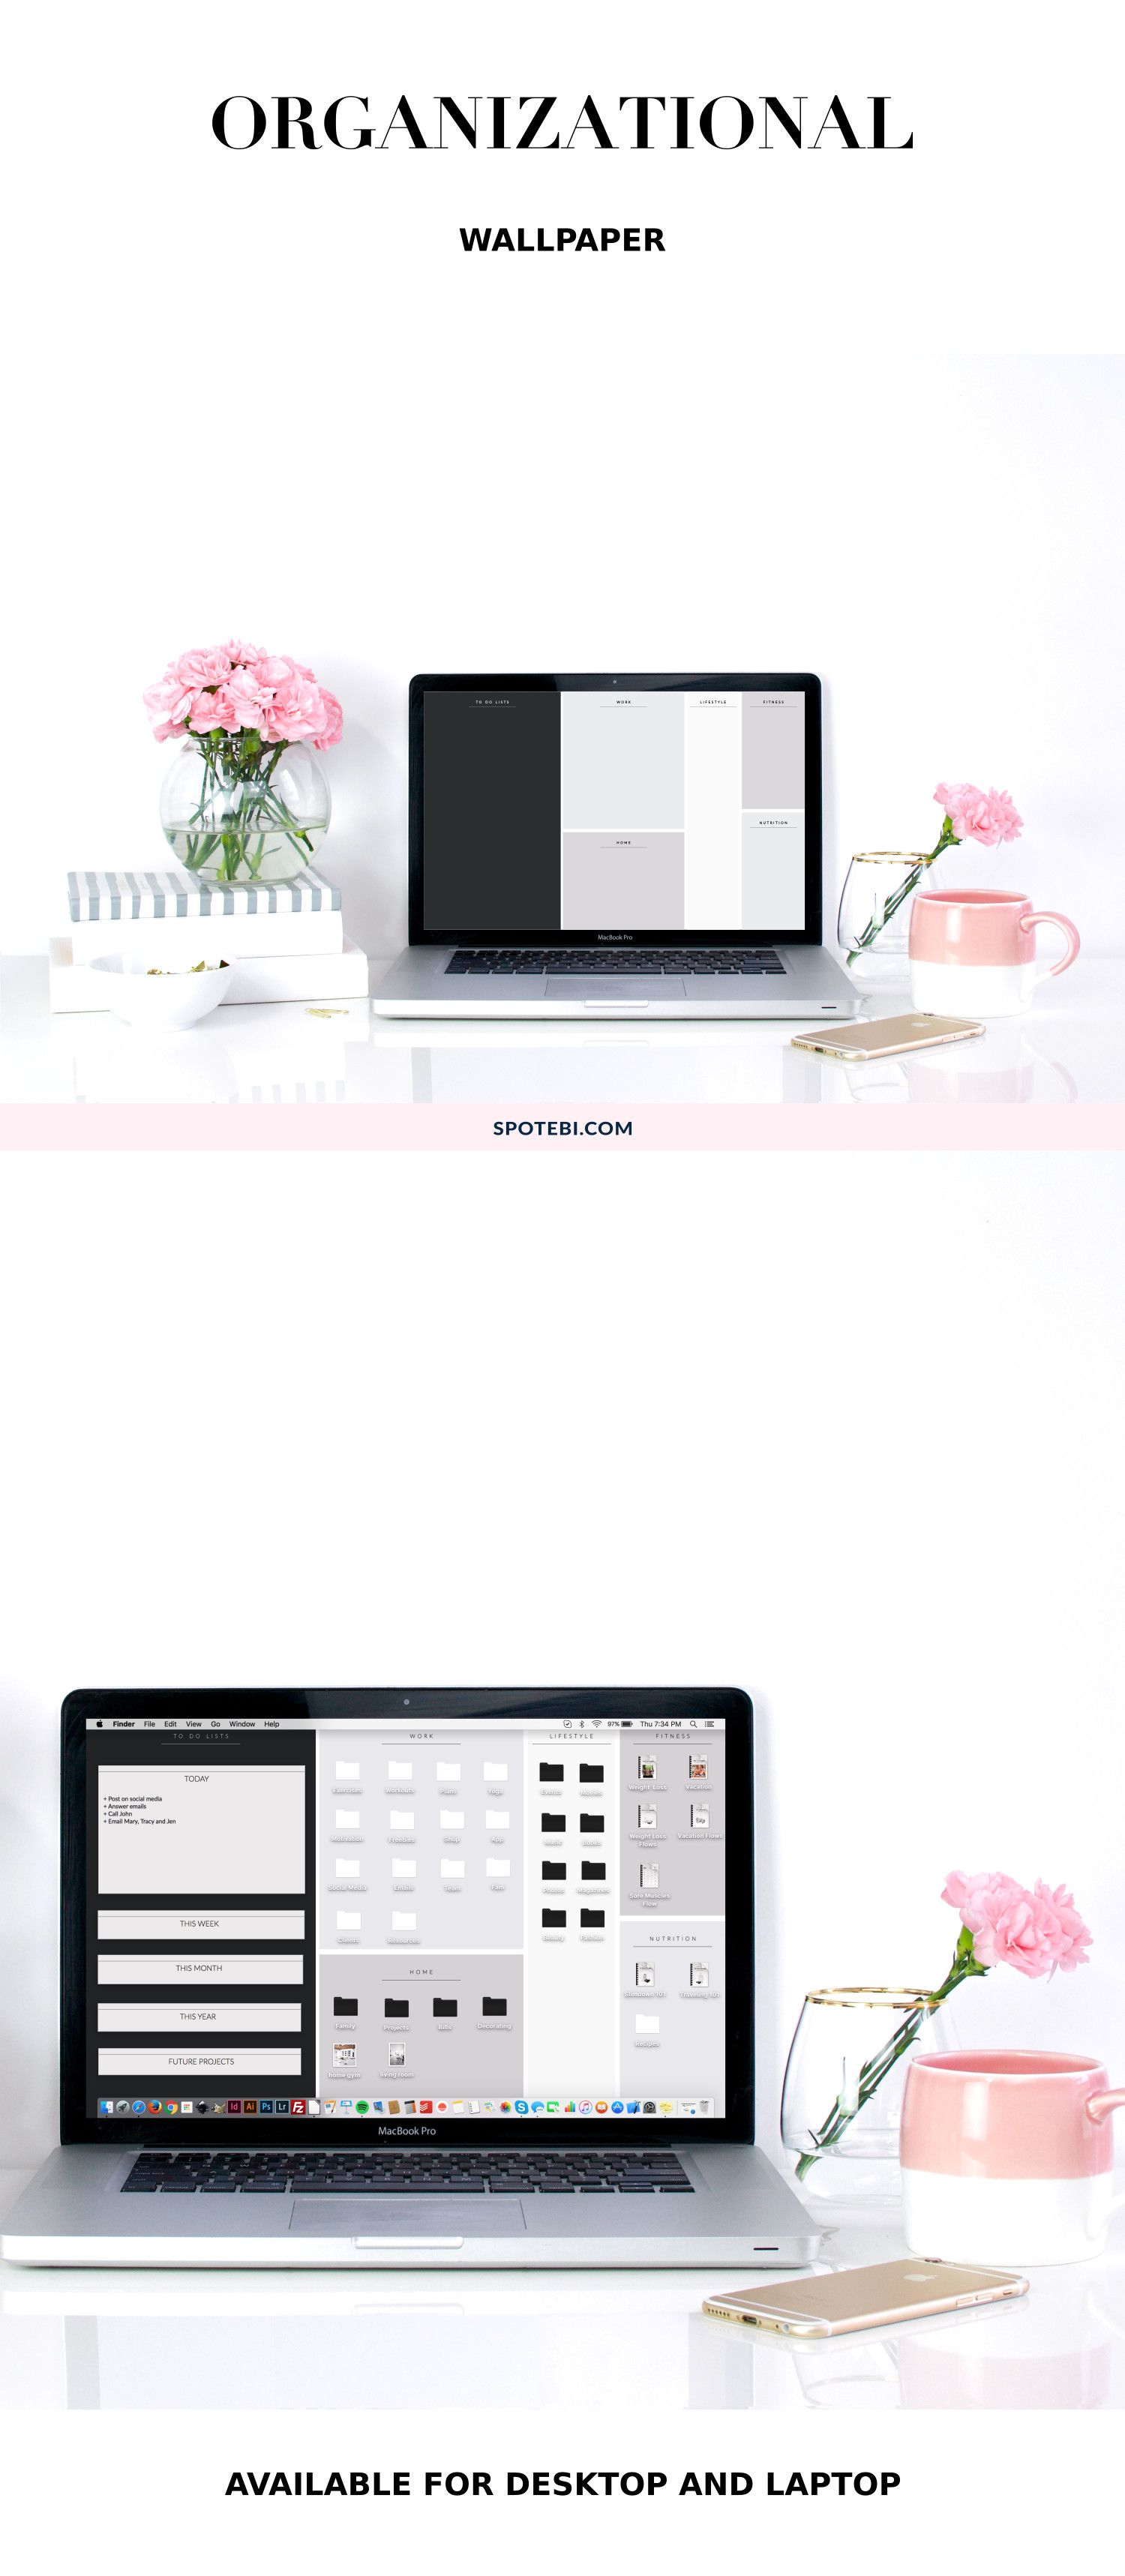 Organizational Wallpaper Style Your Life Desktop Wallpaper Organizer Desktop Organization Free Wallpaper Backgrounds